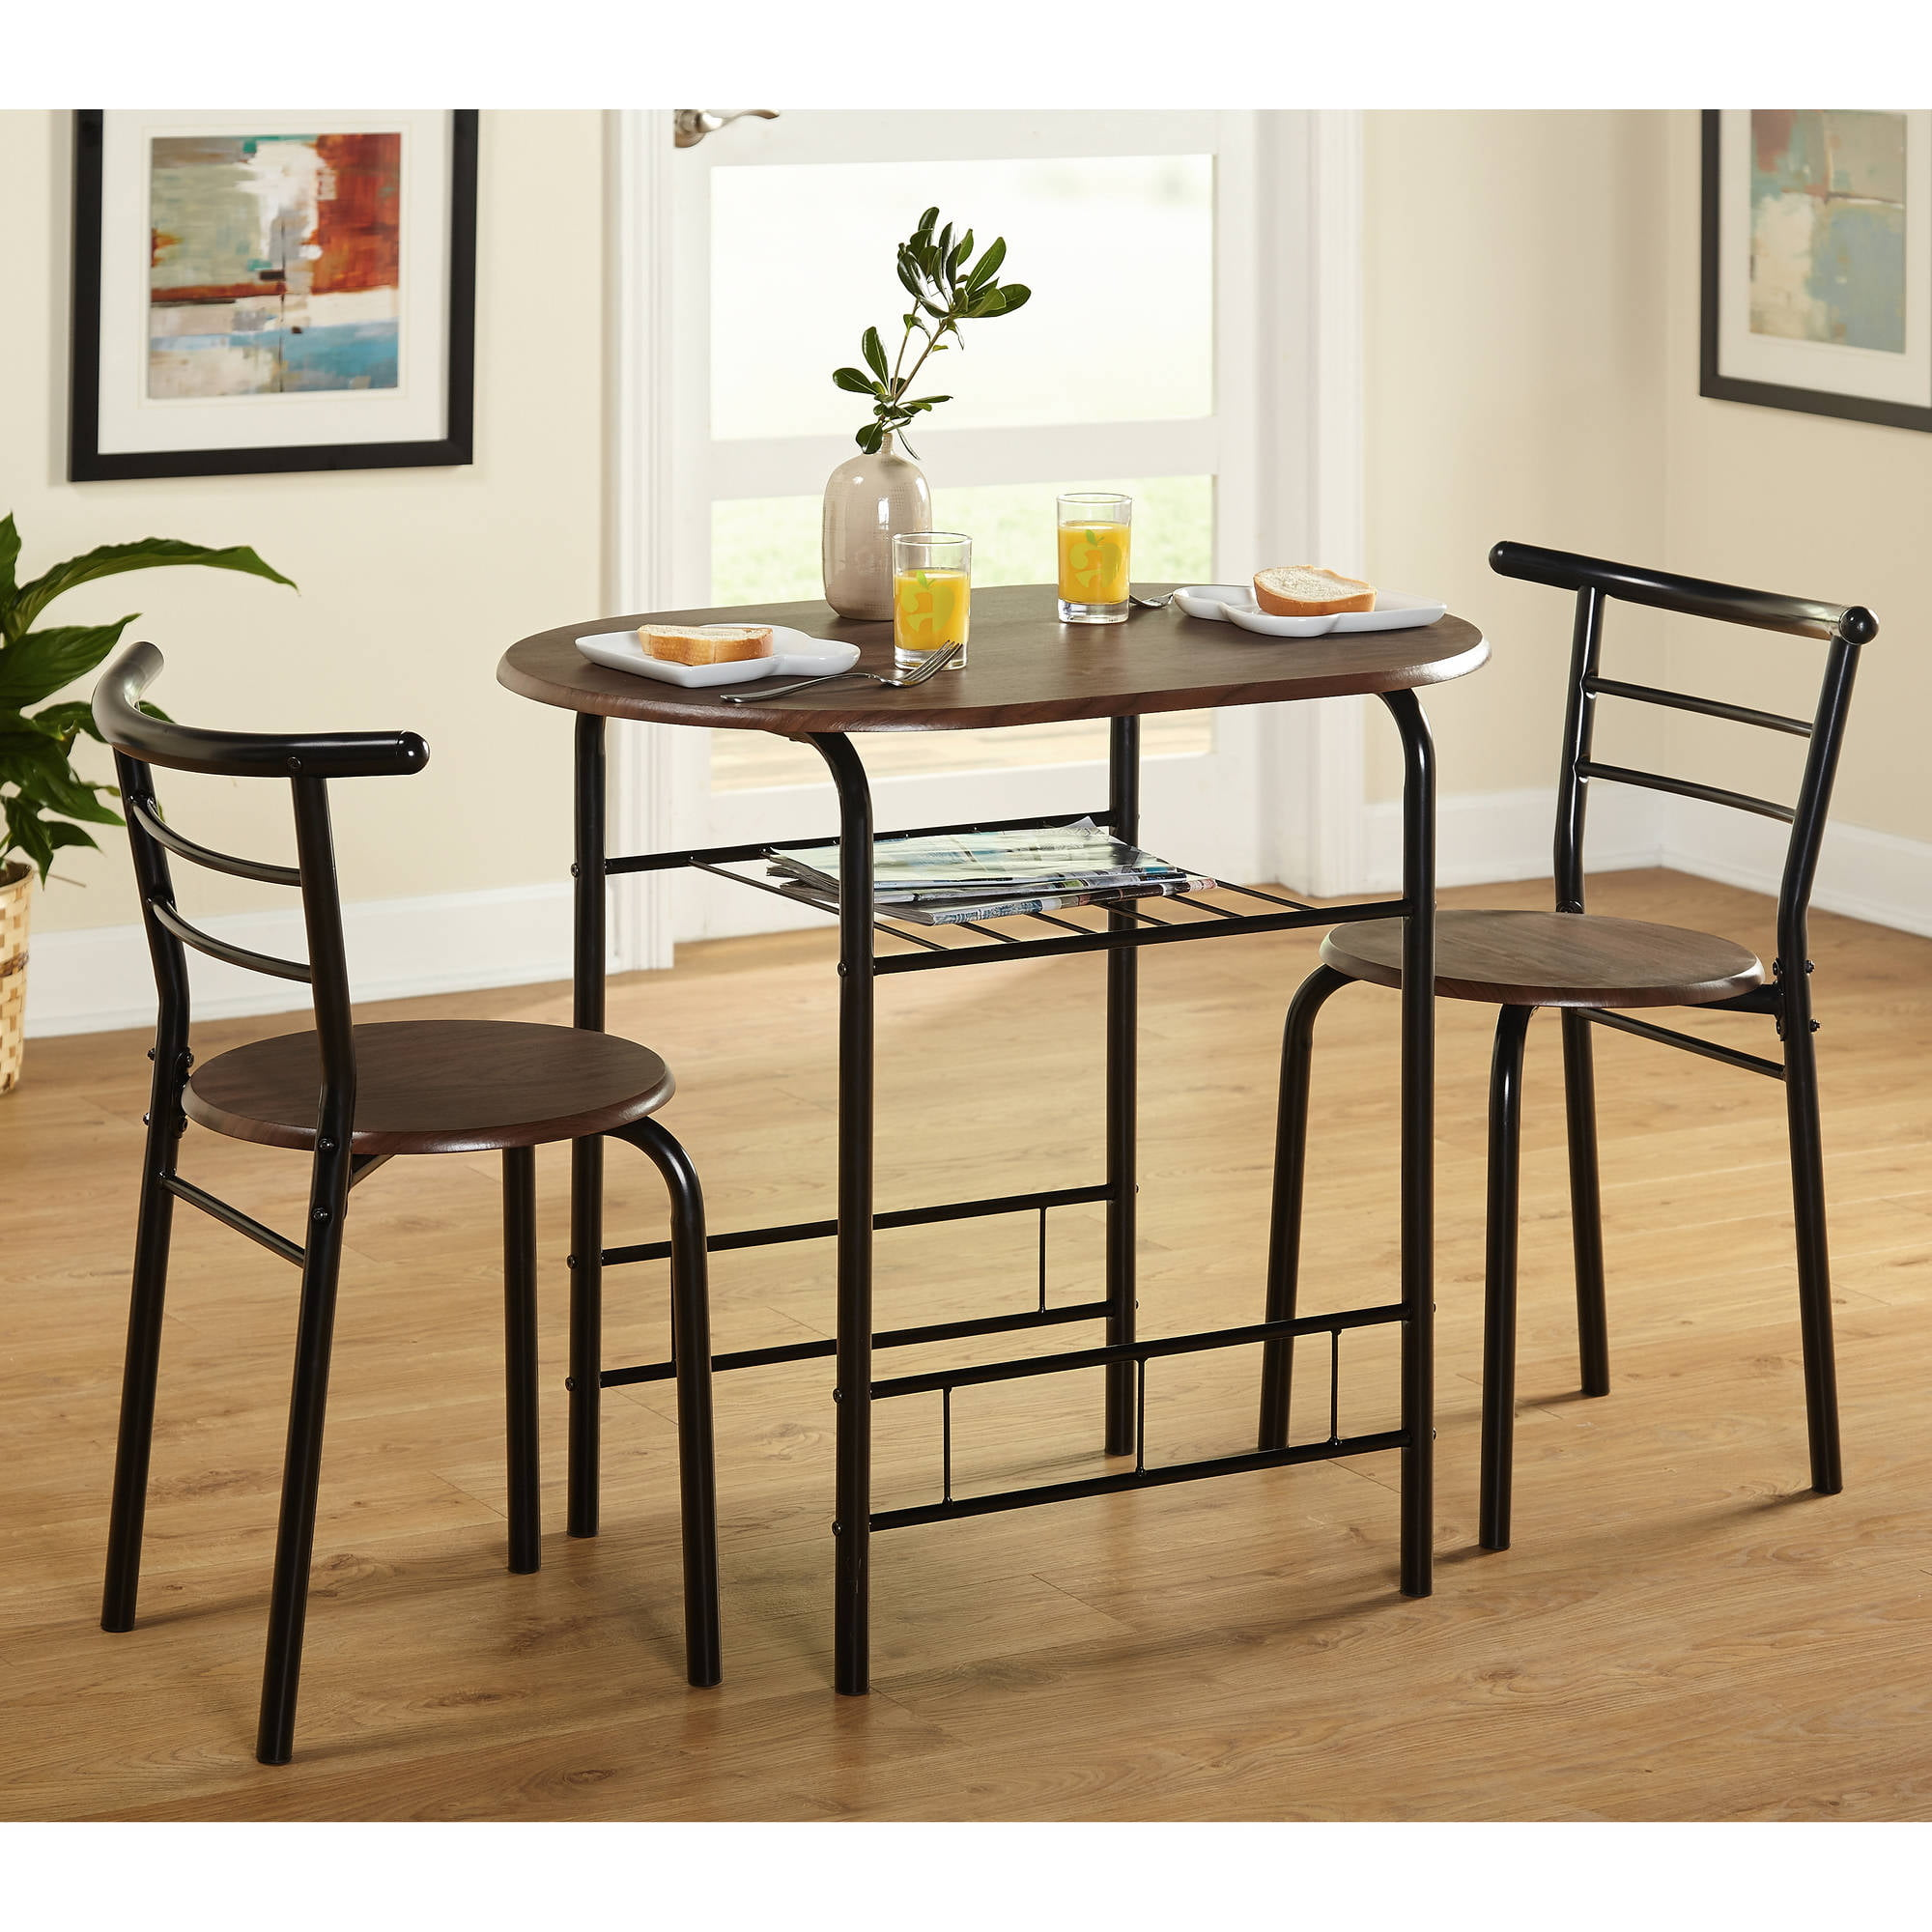 & 3-Piece Bistro Set Multiple Colors - Walmart.com